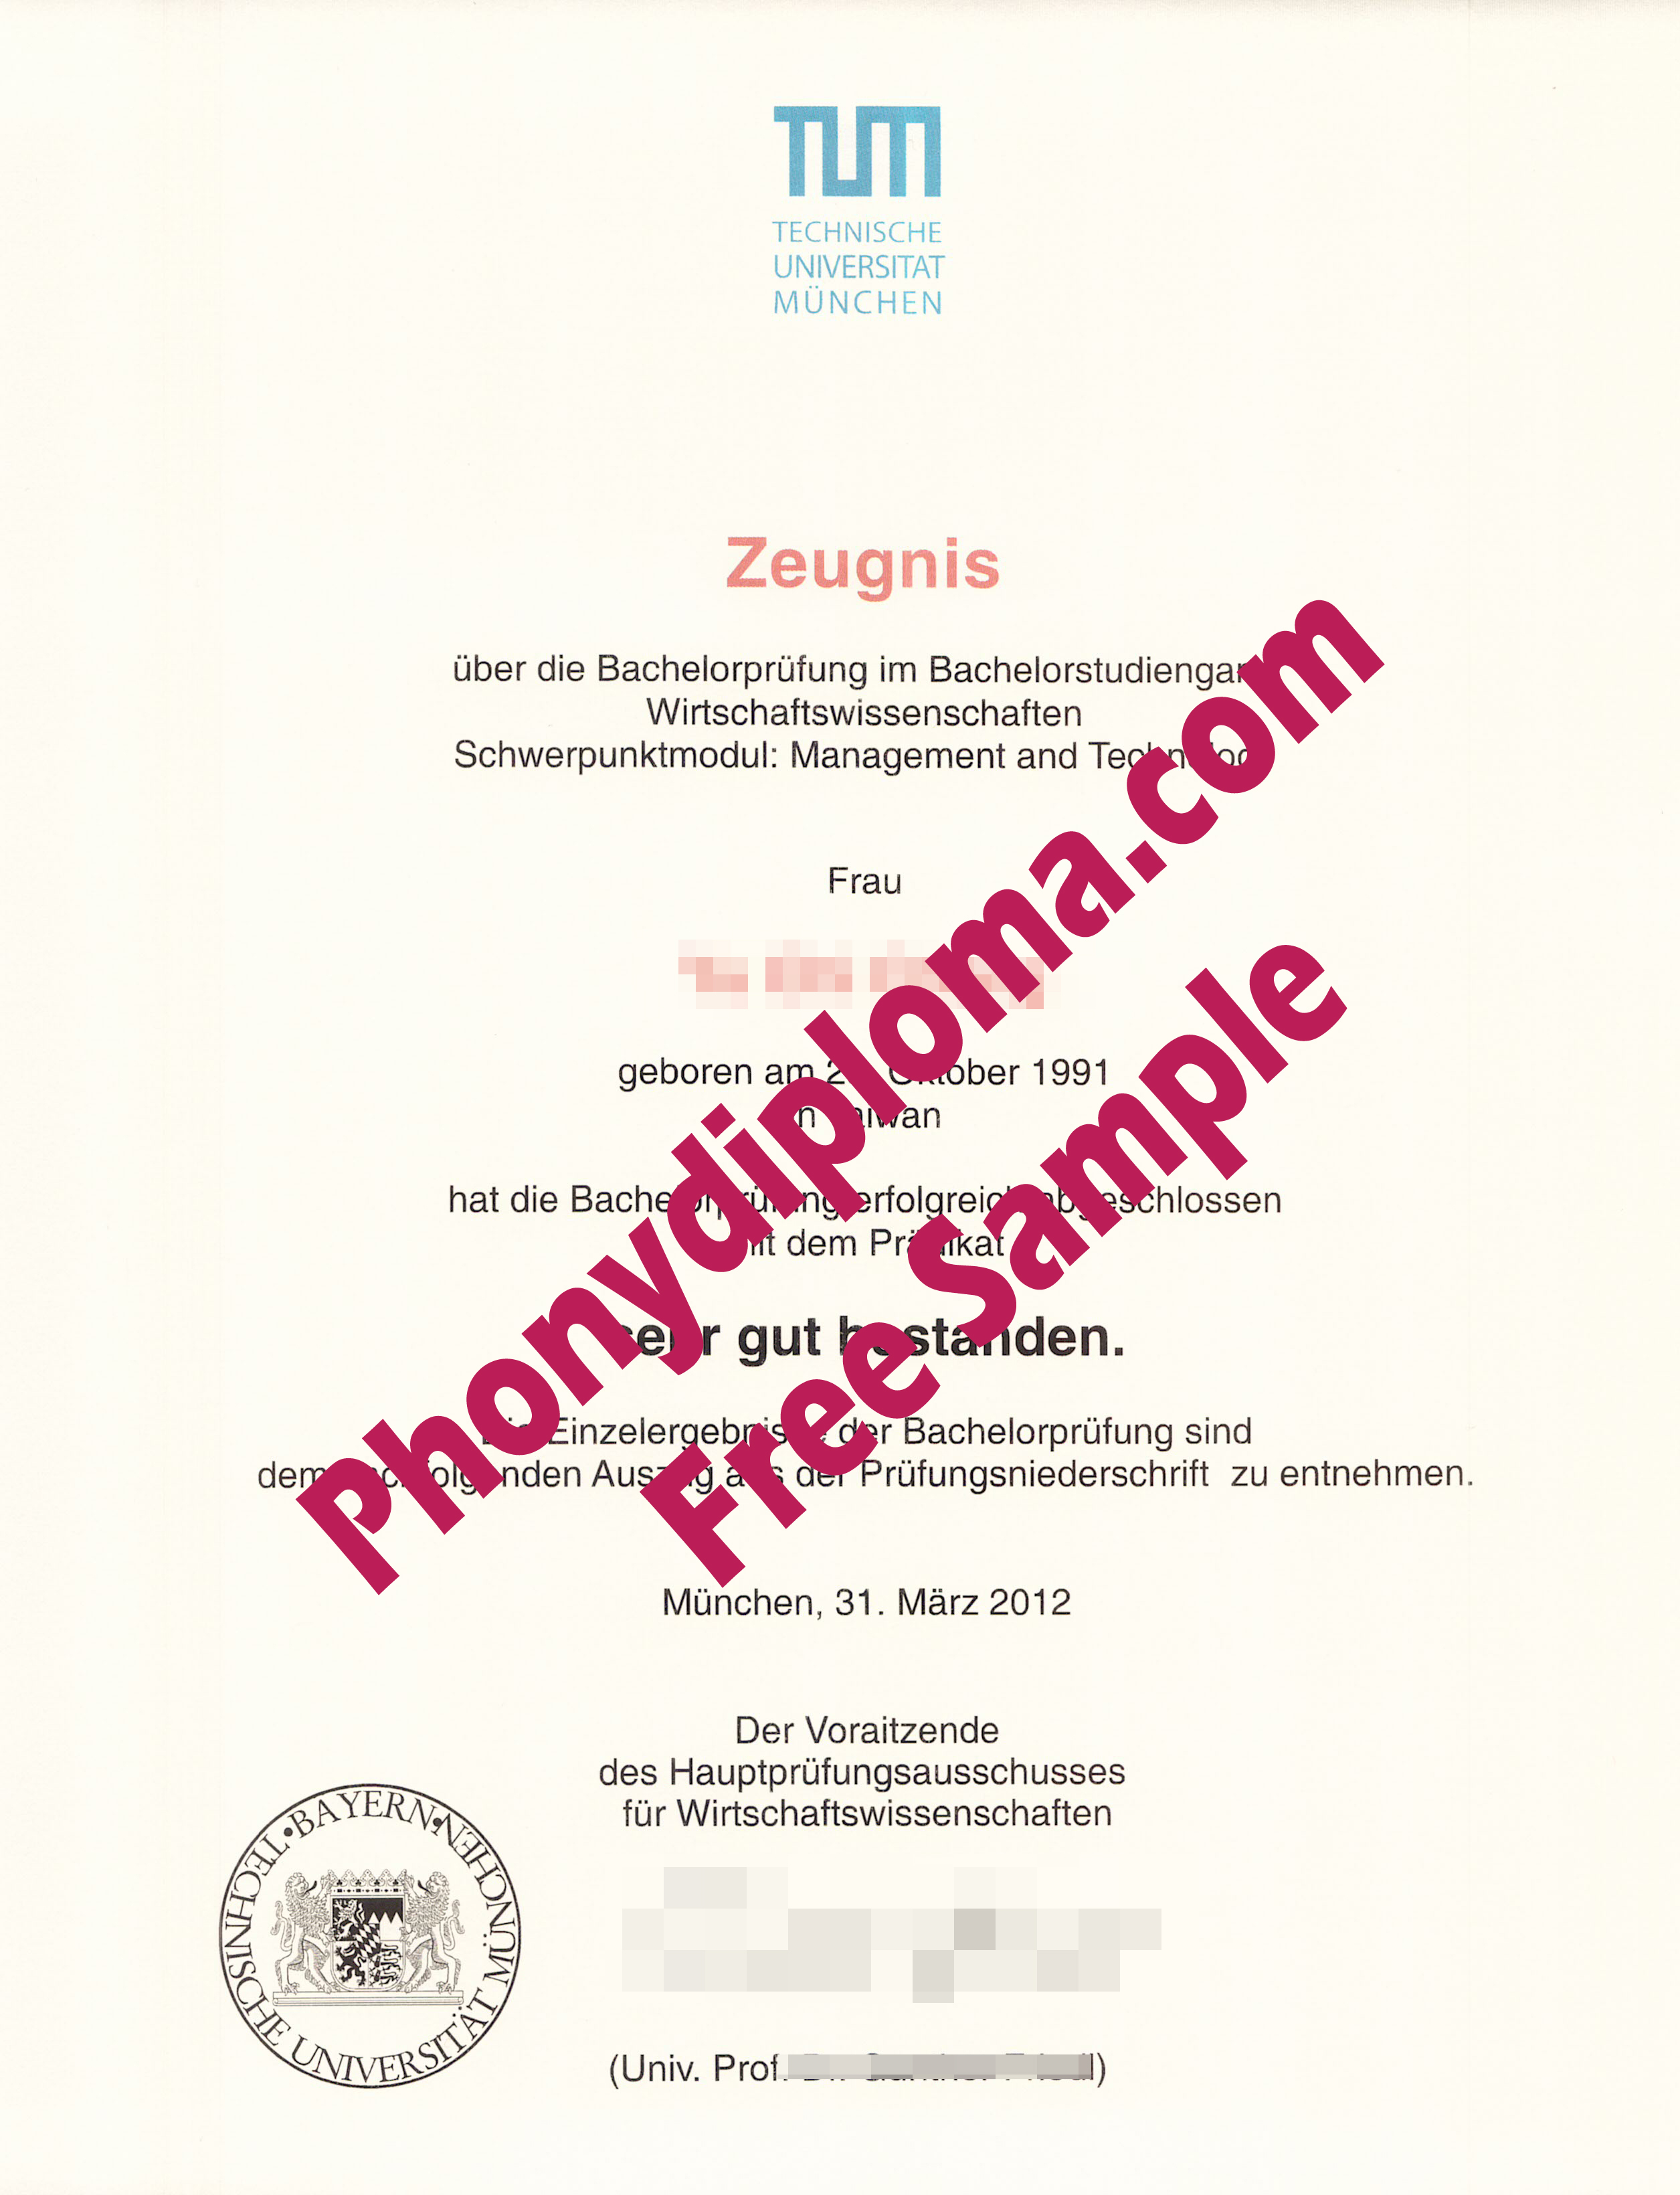 Tum Technische Universitat Munchen Germany Free Sample From Phonydiploma